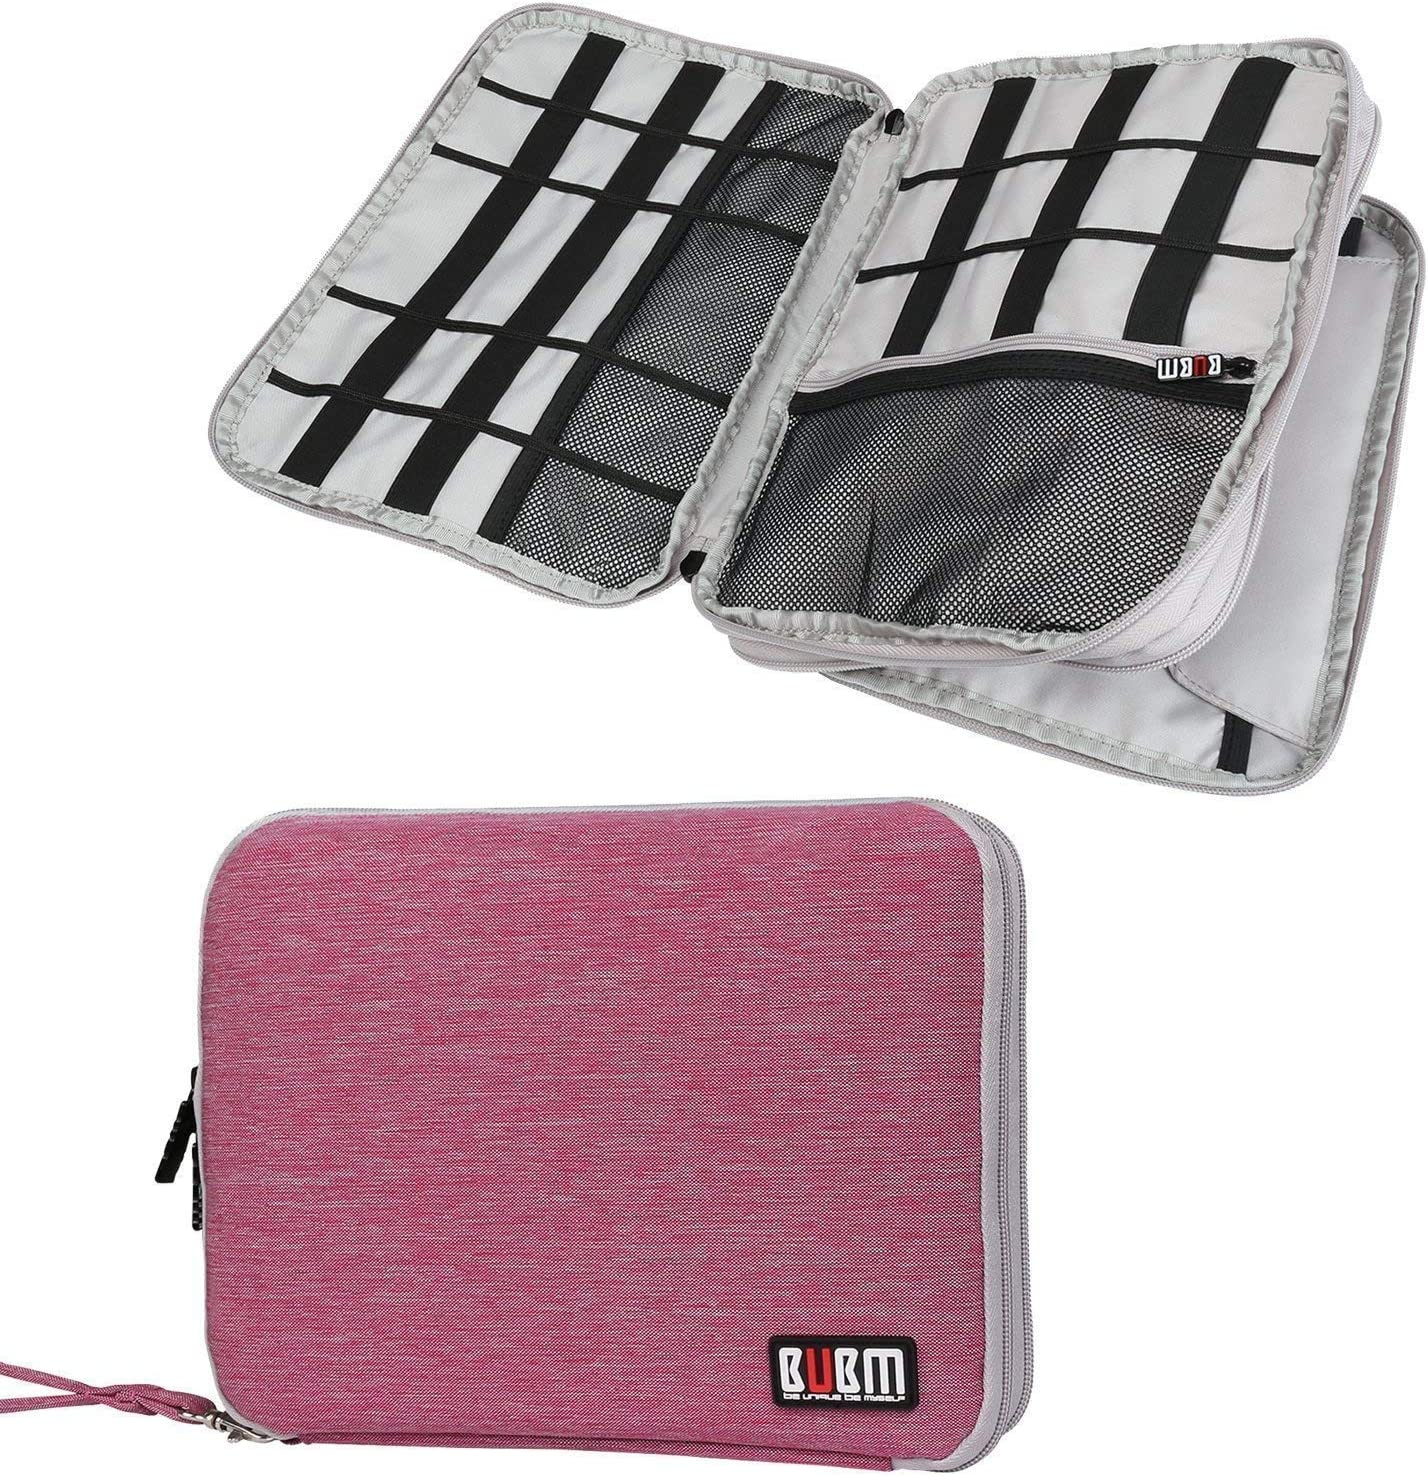 BUBM Universal Travel Gear Organiser Double Layer with Zipper Closure Memory Cards and More Battery Ultra High Capacity Electronics Accessories Bag for iPad Large, Grey and Orange USB Cables